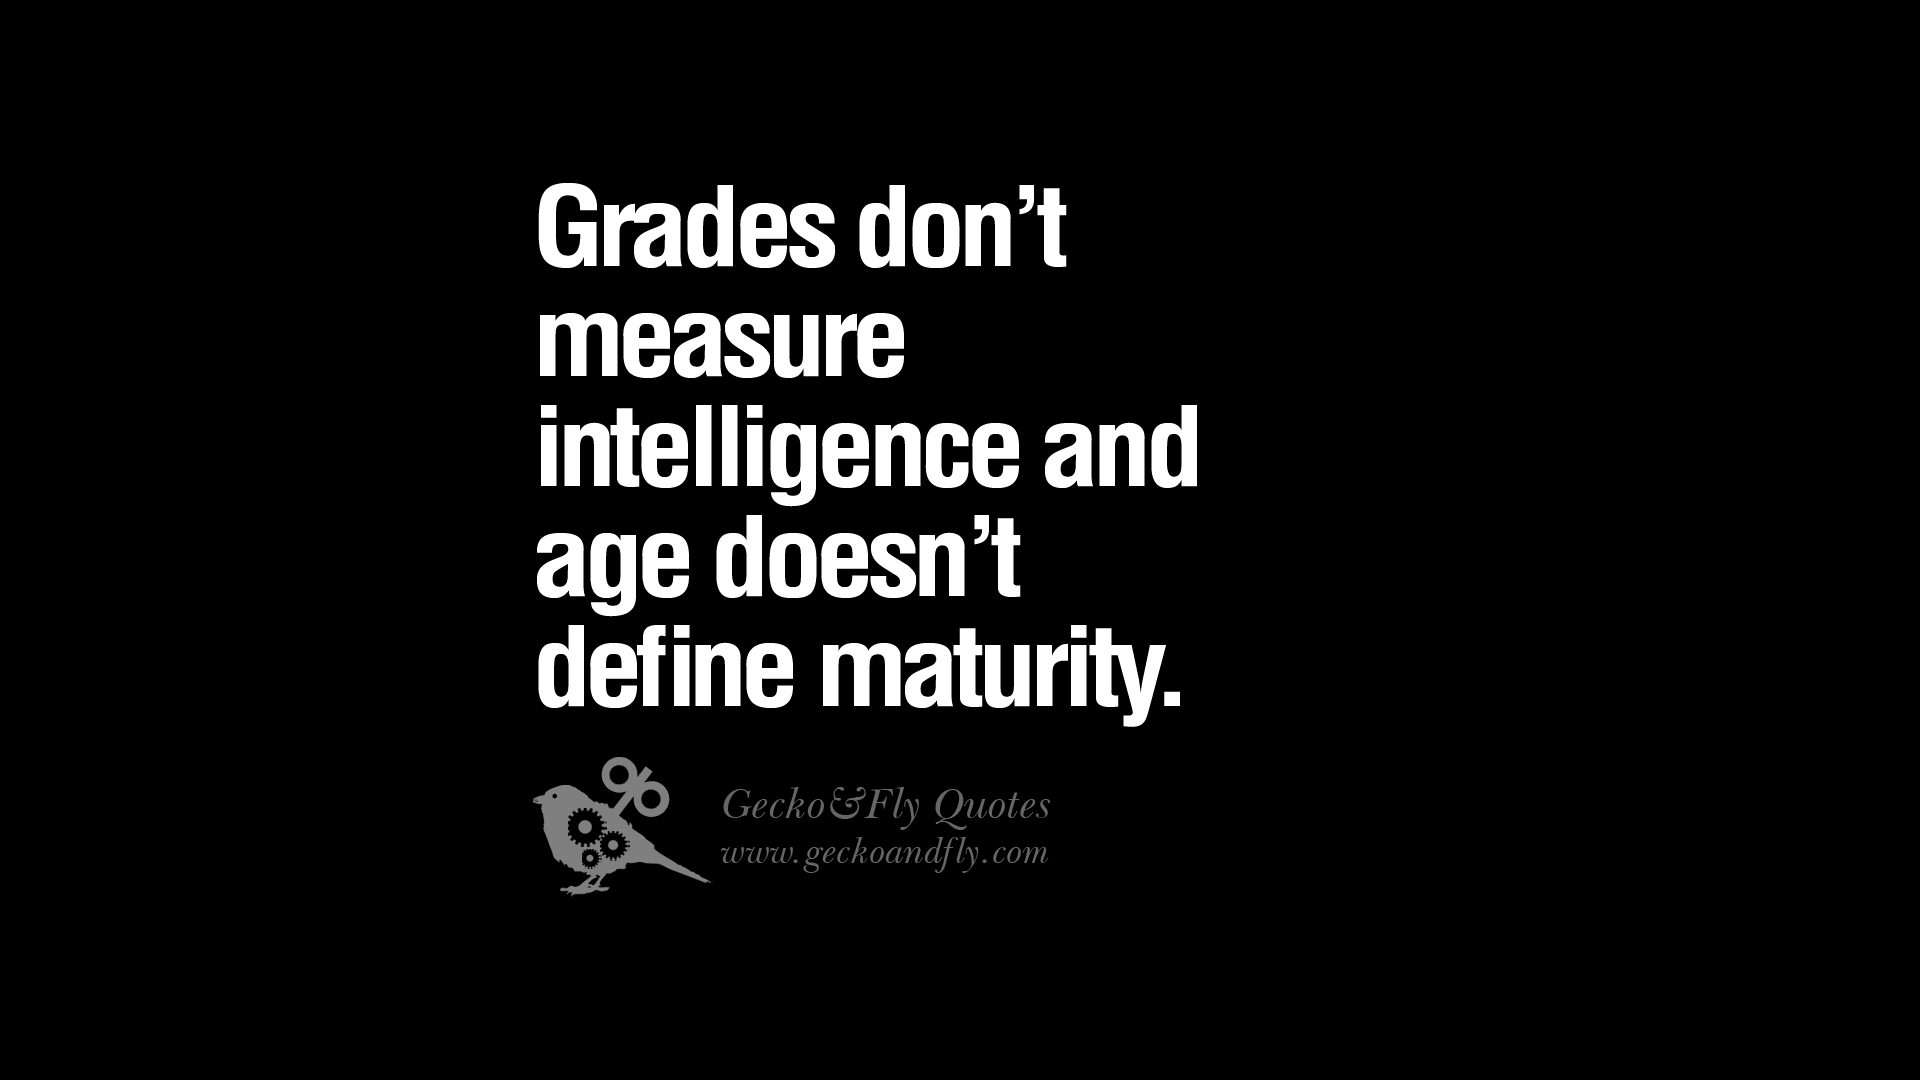 Quotes about grades and intelligence 21 quotes